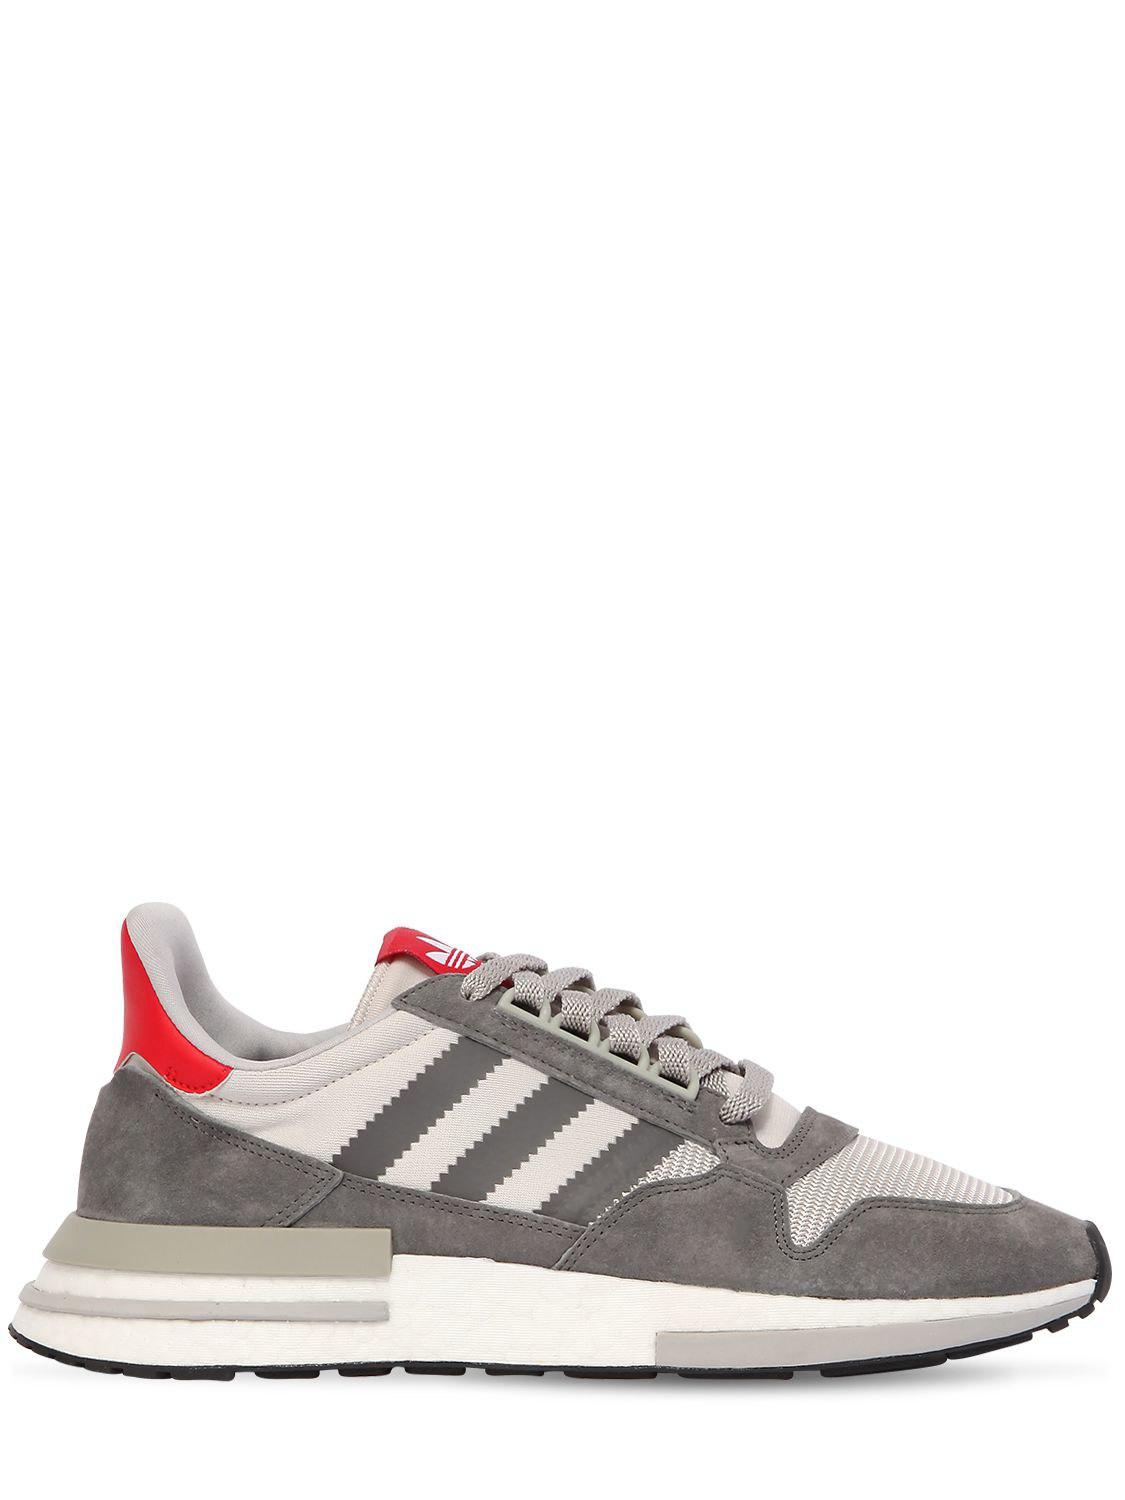 01a7c8b76ea adidas Originals Zx 500 Sneakers in Gray for Men - Save 44% - Lyst